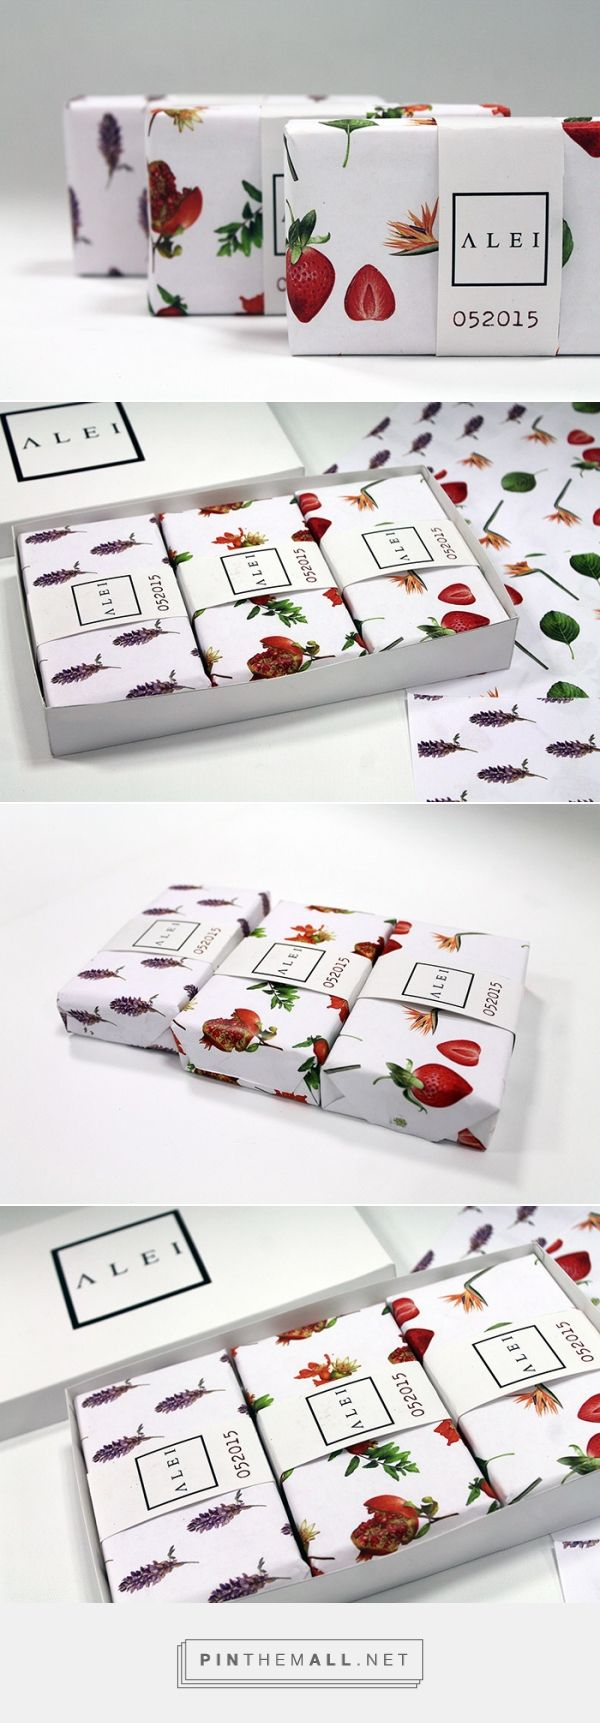 ALEI handcrafted soap designe by Manolo Rangel. Pin curated by #SFields99 #packaging #design